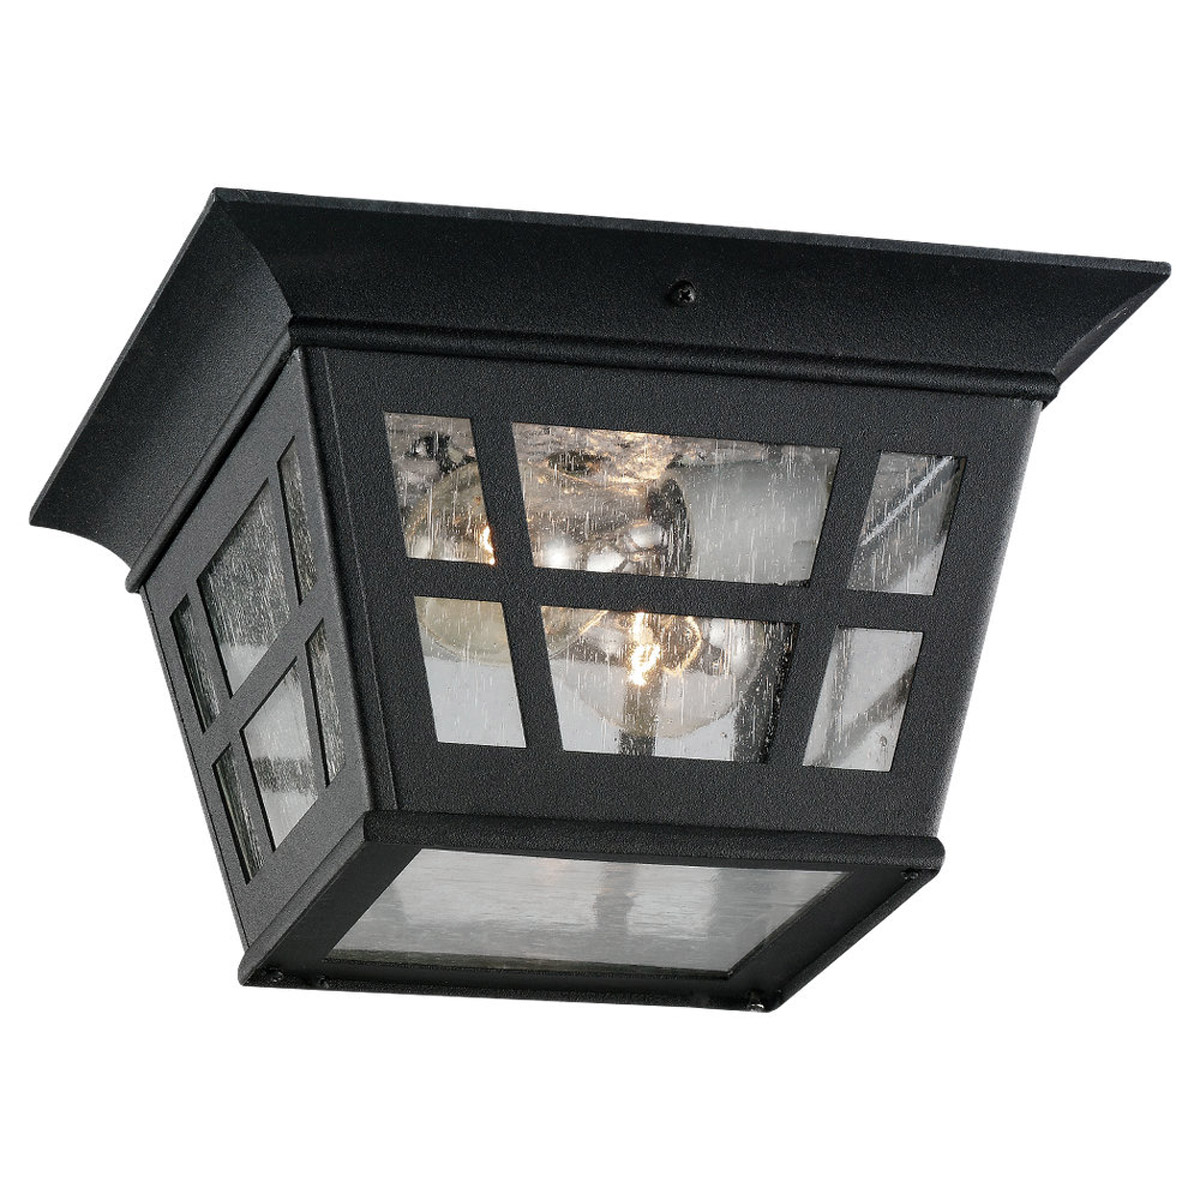 Sea Gull Lighting Herrington 2 Light Outdoor Ceiling Fixture in Black 78131-12